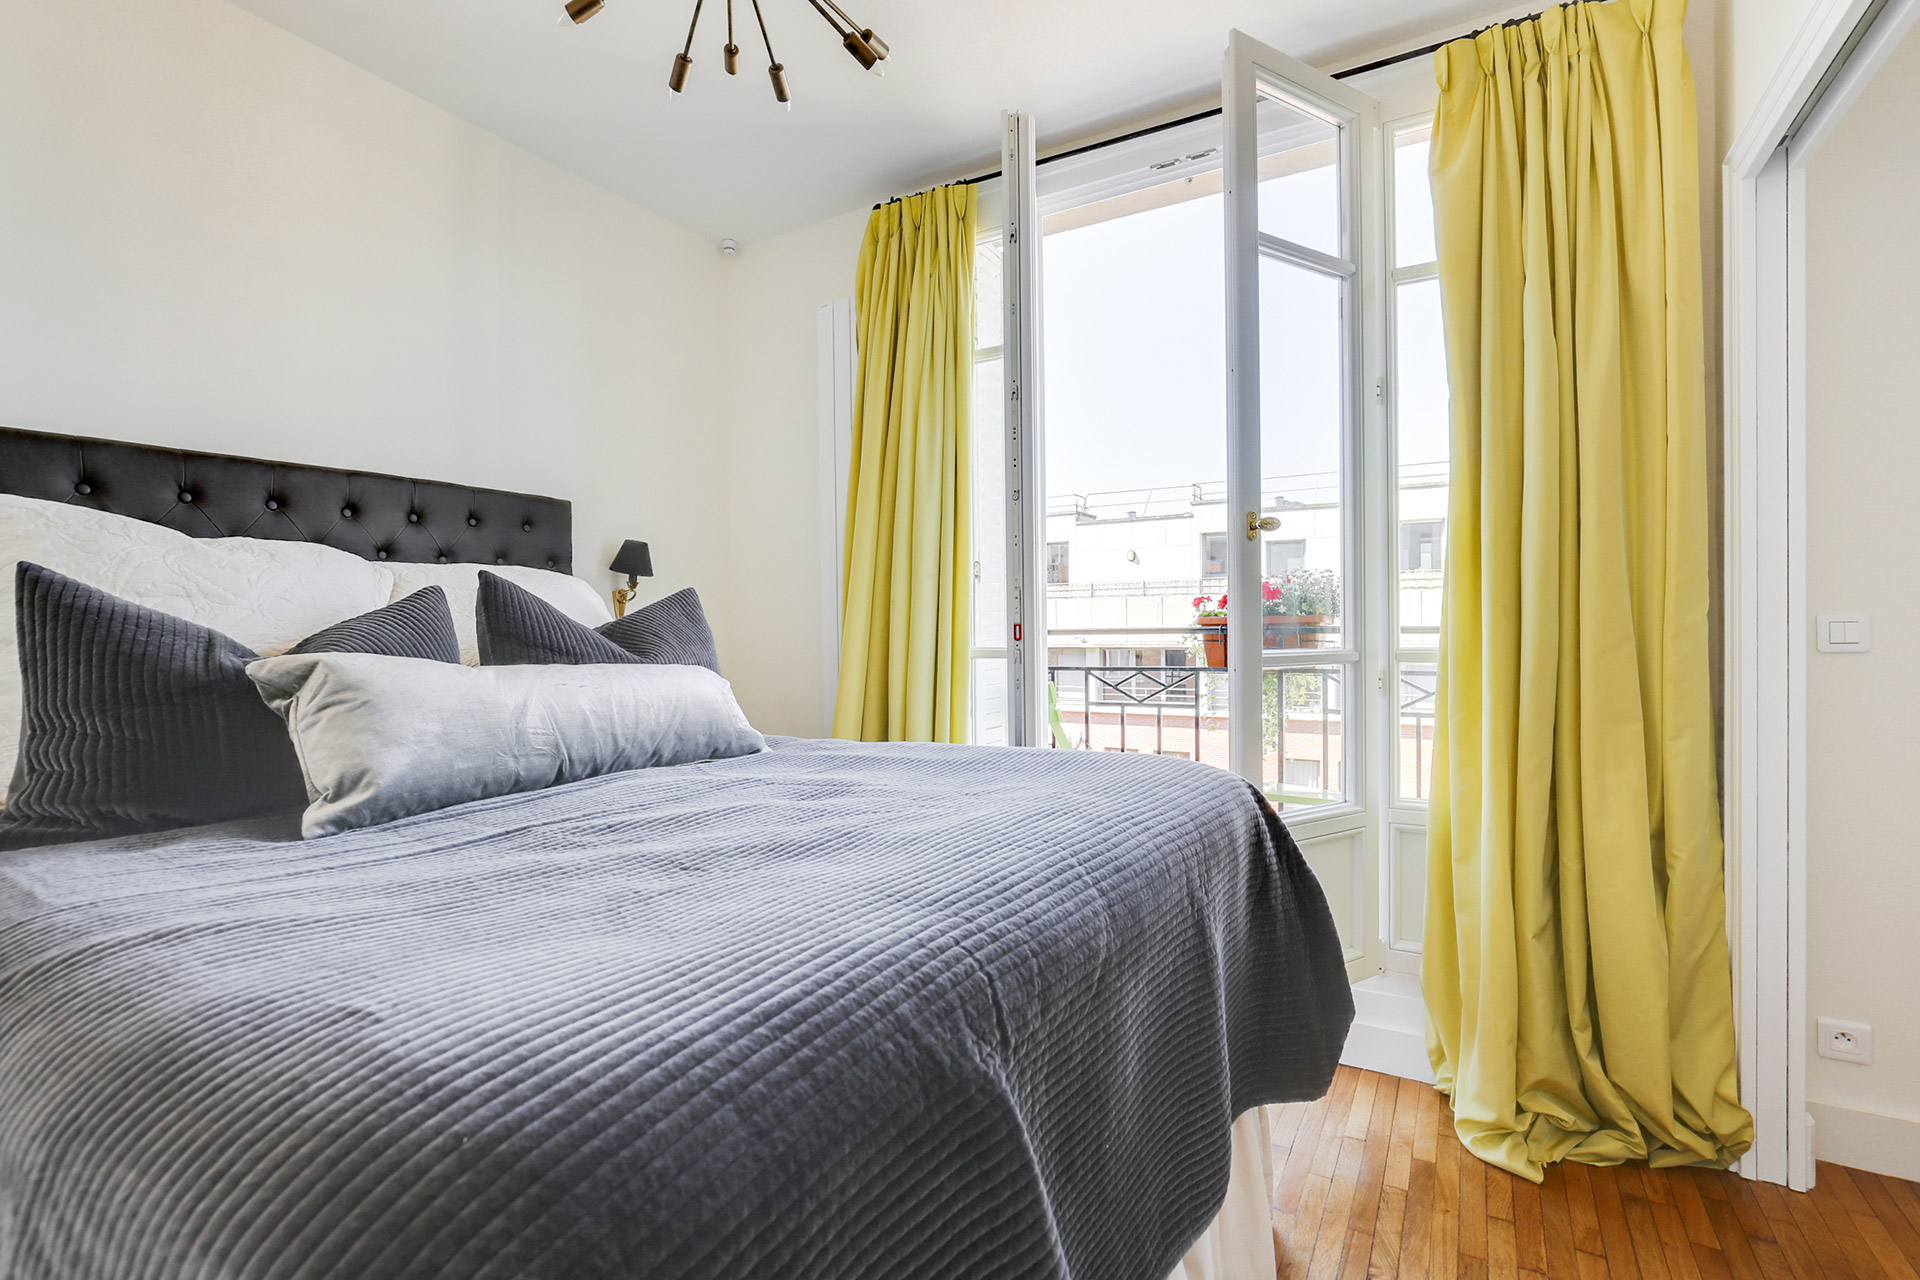 Gaze out over the rooftops from the bed in the morning in the Vivarais vacation rental by Paris Perfect